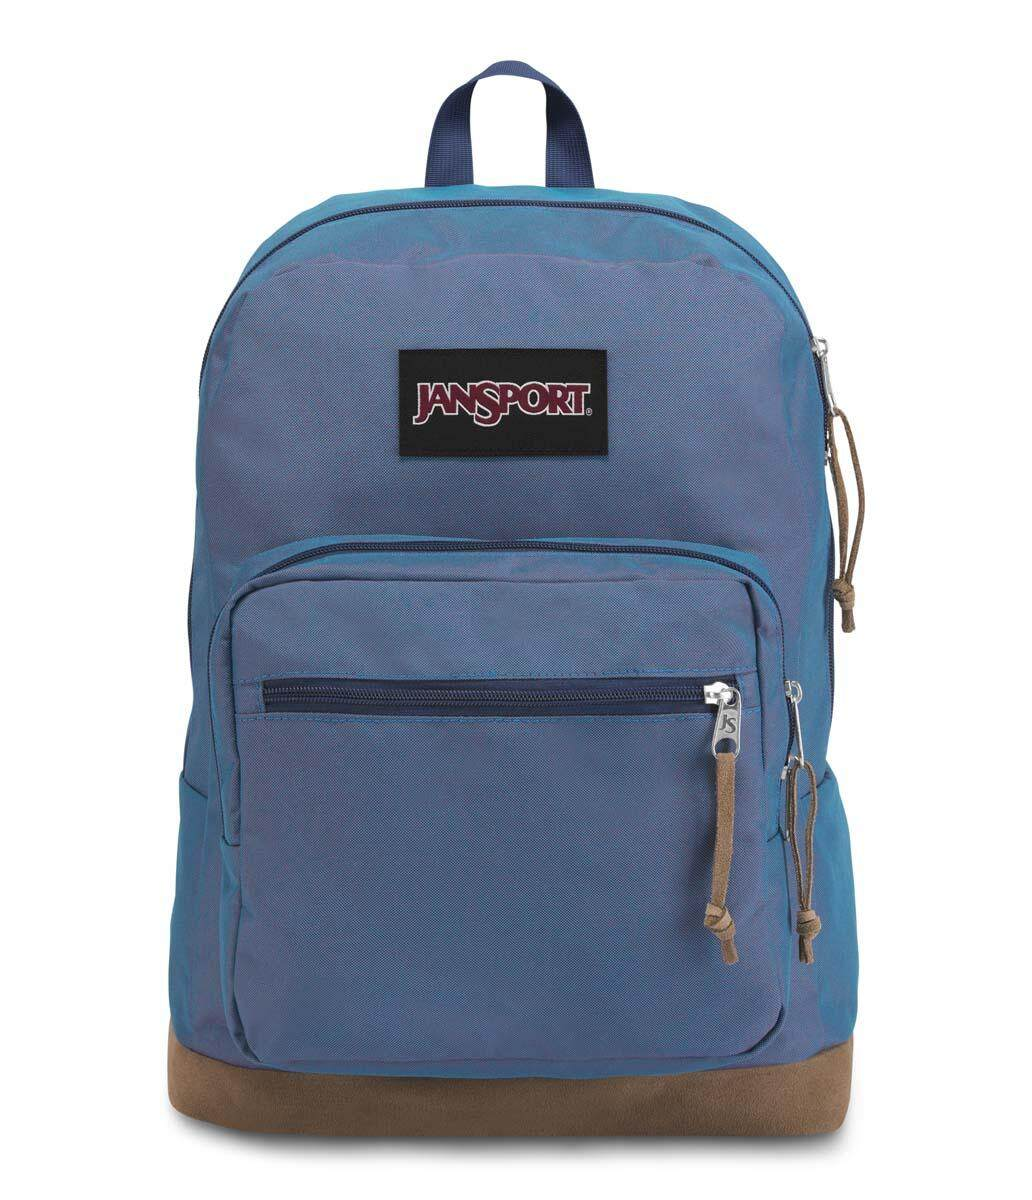 36263233d JanSport - Buy JanSport at Best Price in Malaysia | www.lazada.com.my